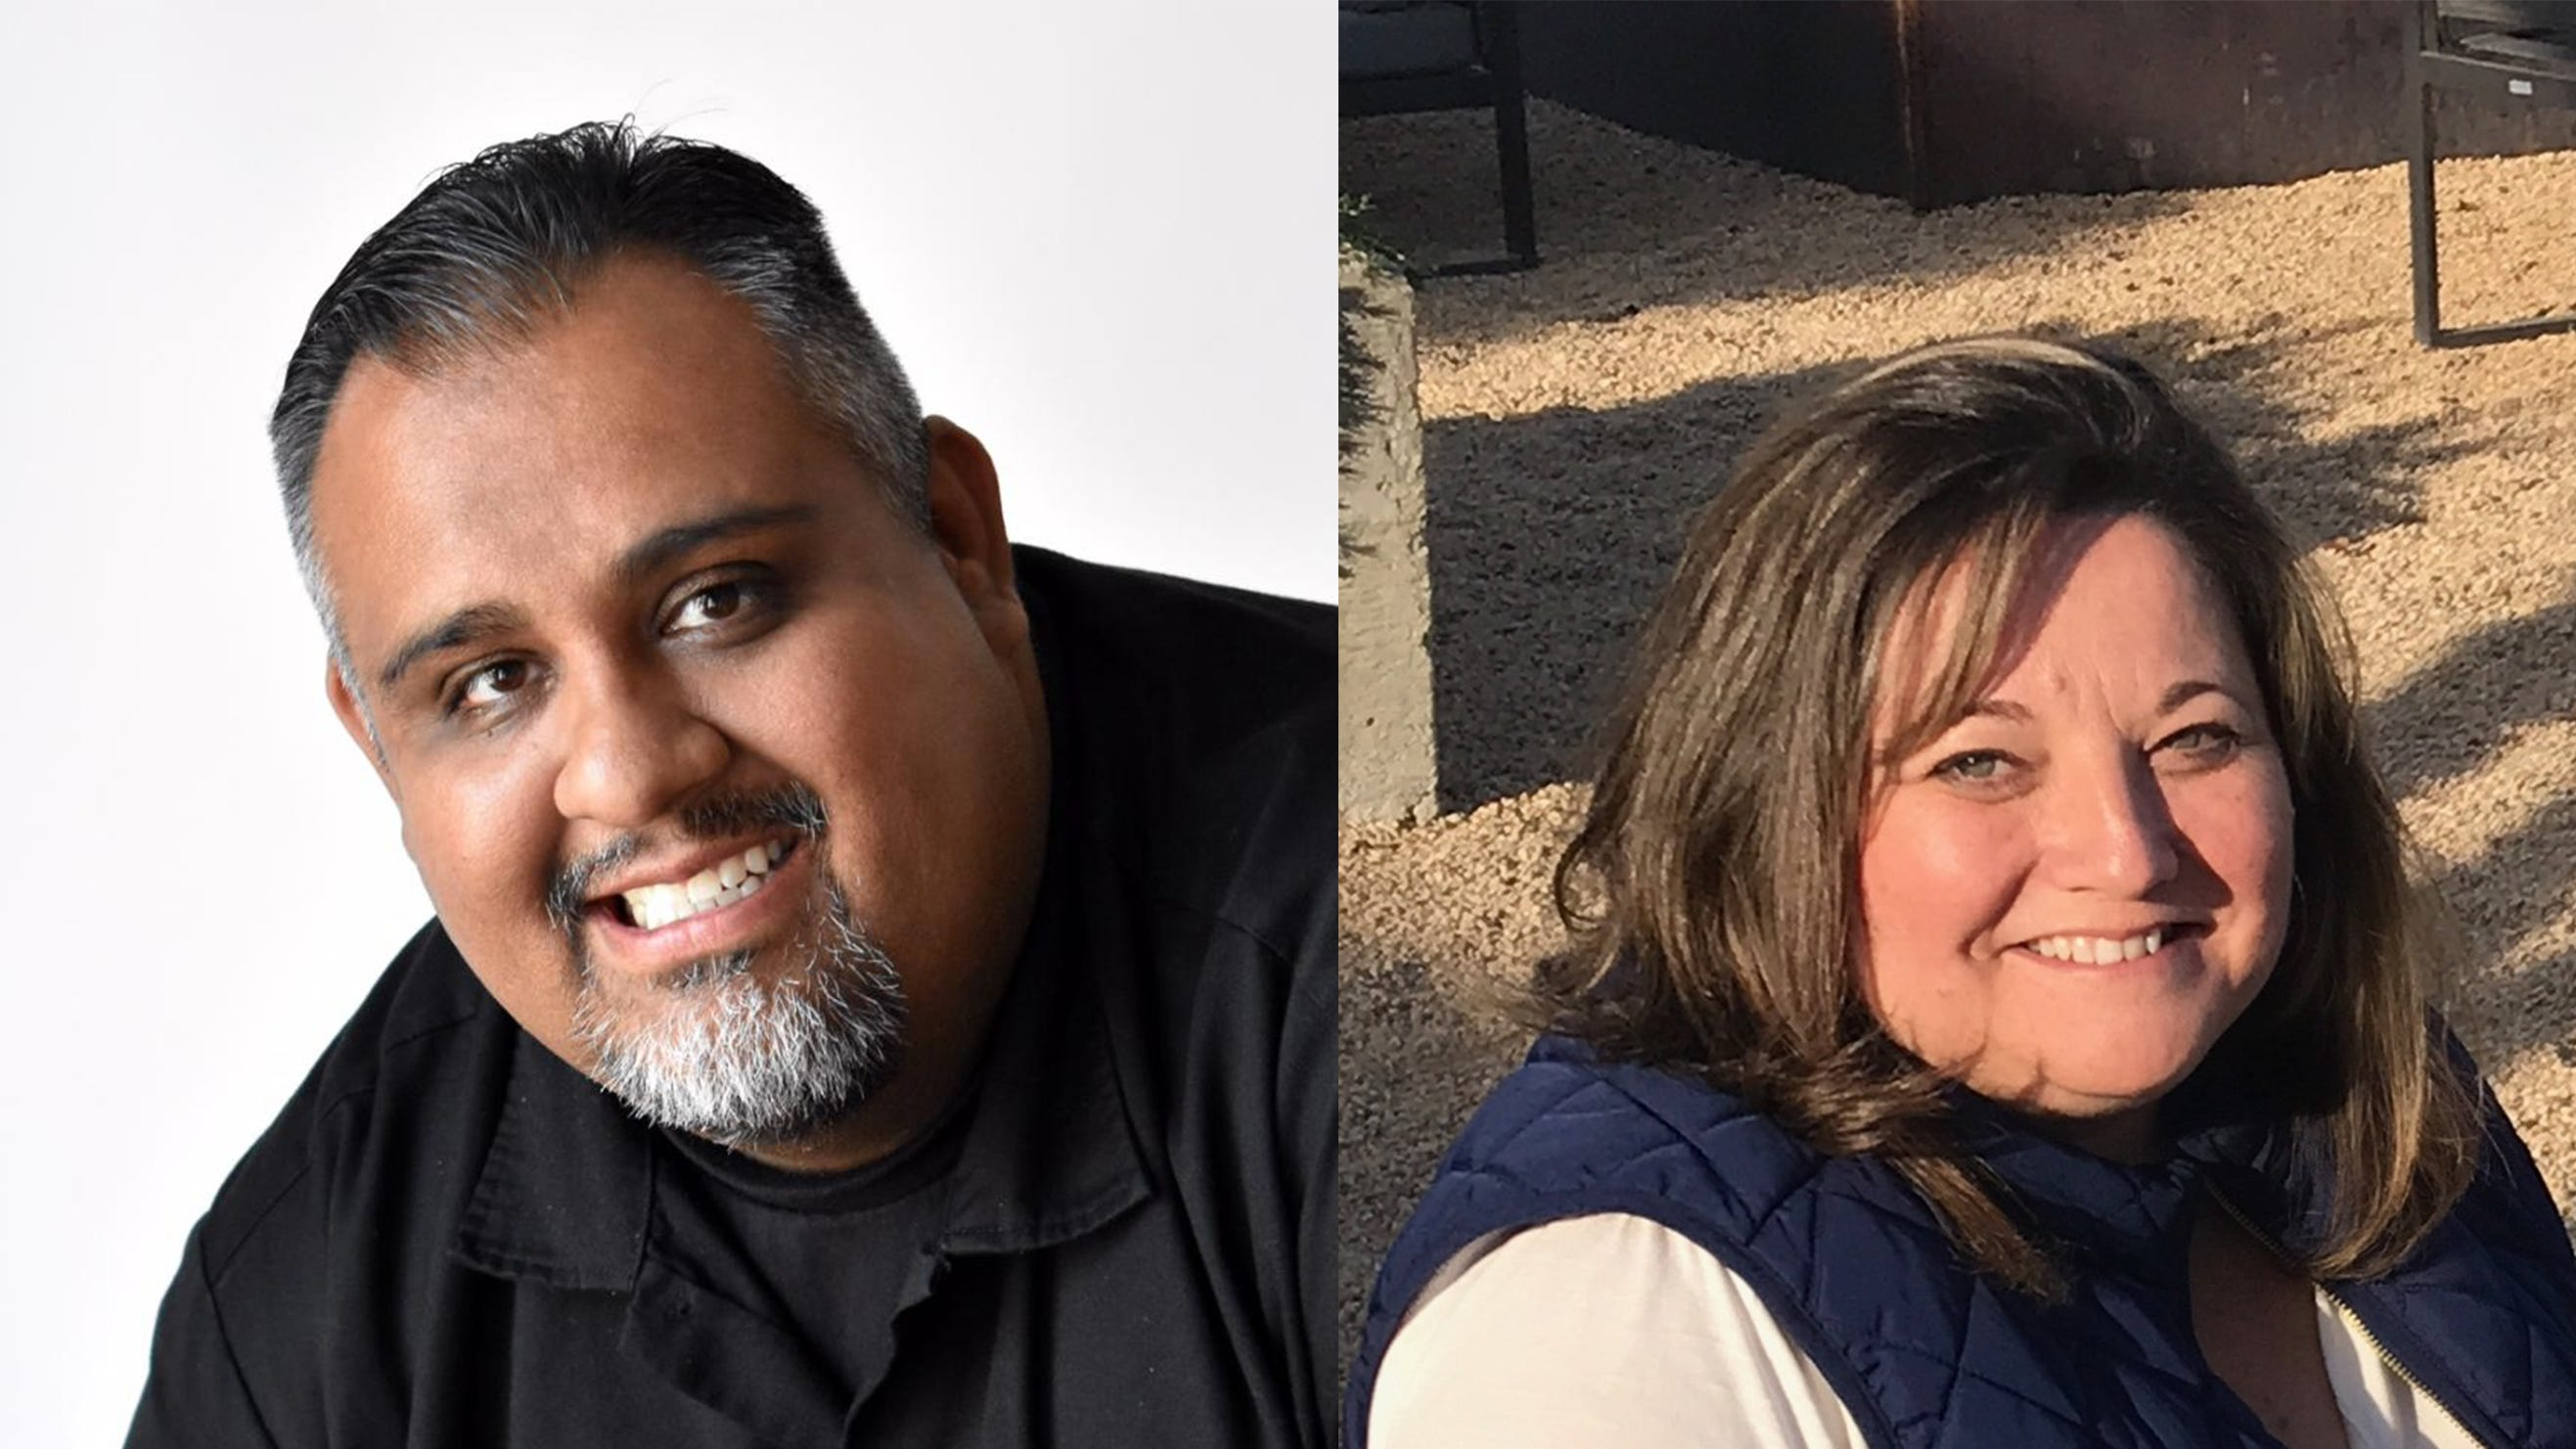 Andrew Sandoval and Christie Cromeenes are running for Salinas City Council District 5.